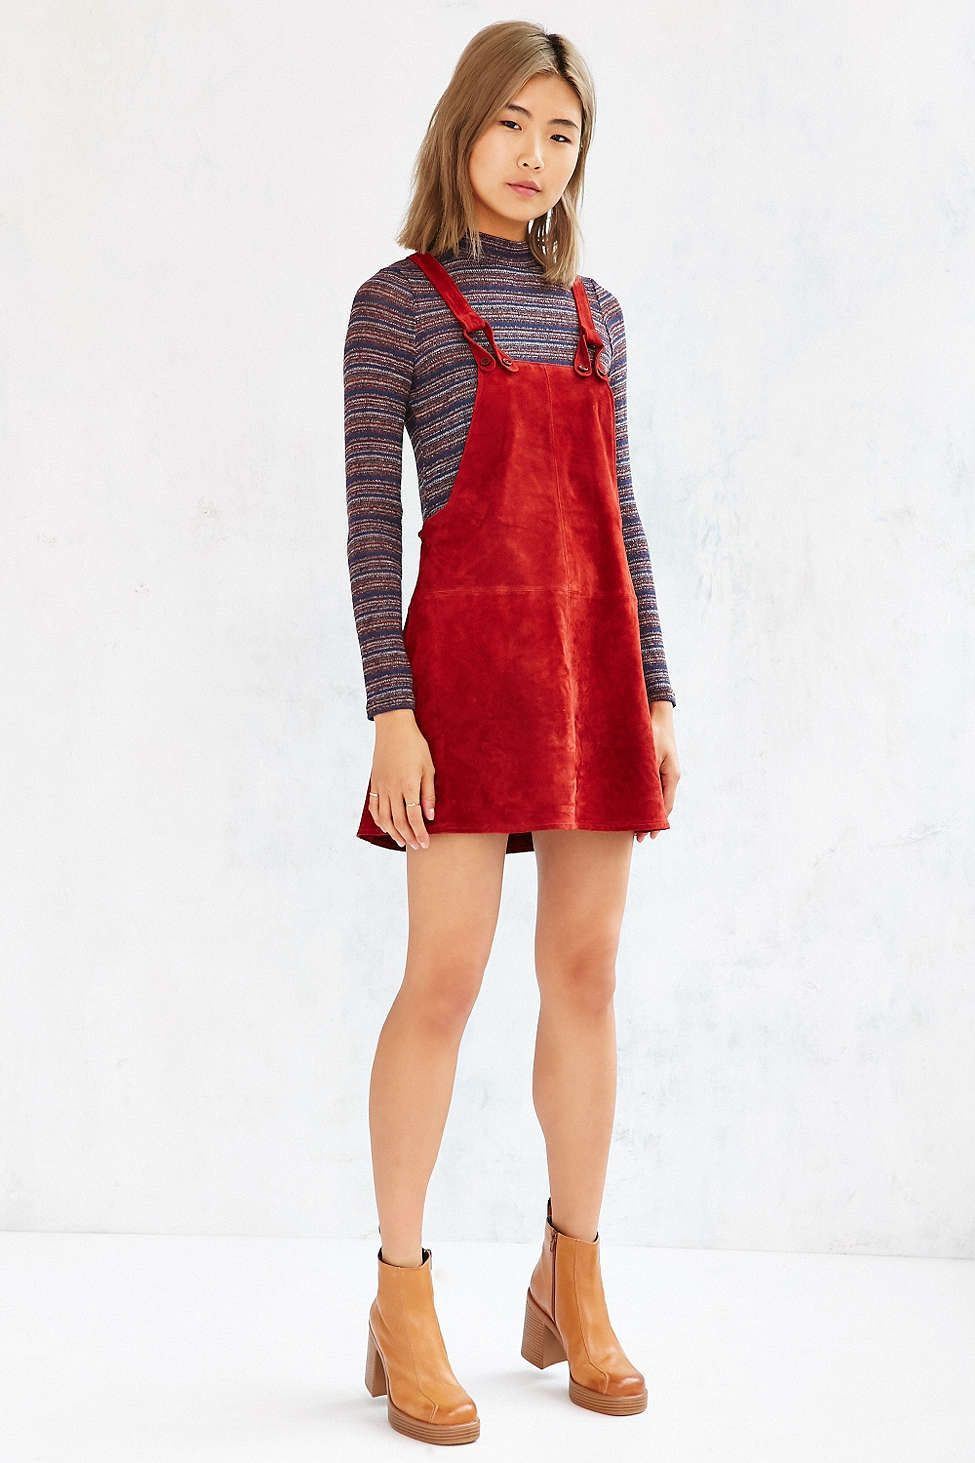 63d916a3cff2 Cooperative Brandy Suede Overall Dress | Dresses | Fashion, Overall ...